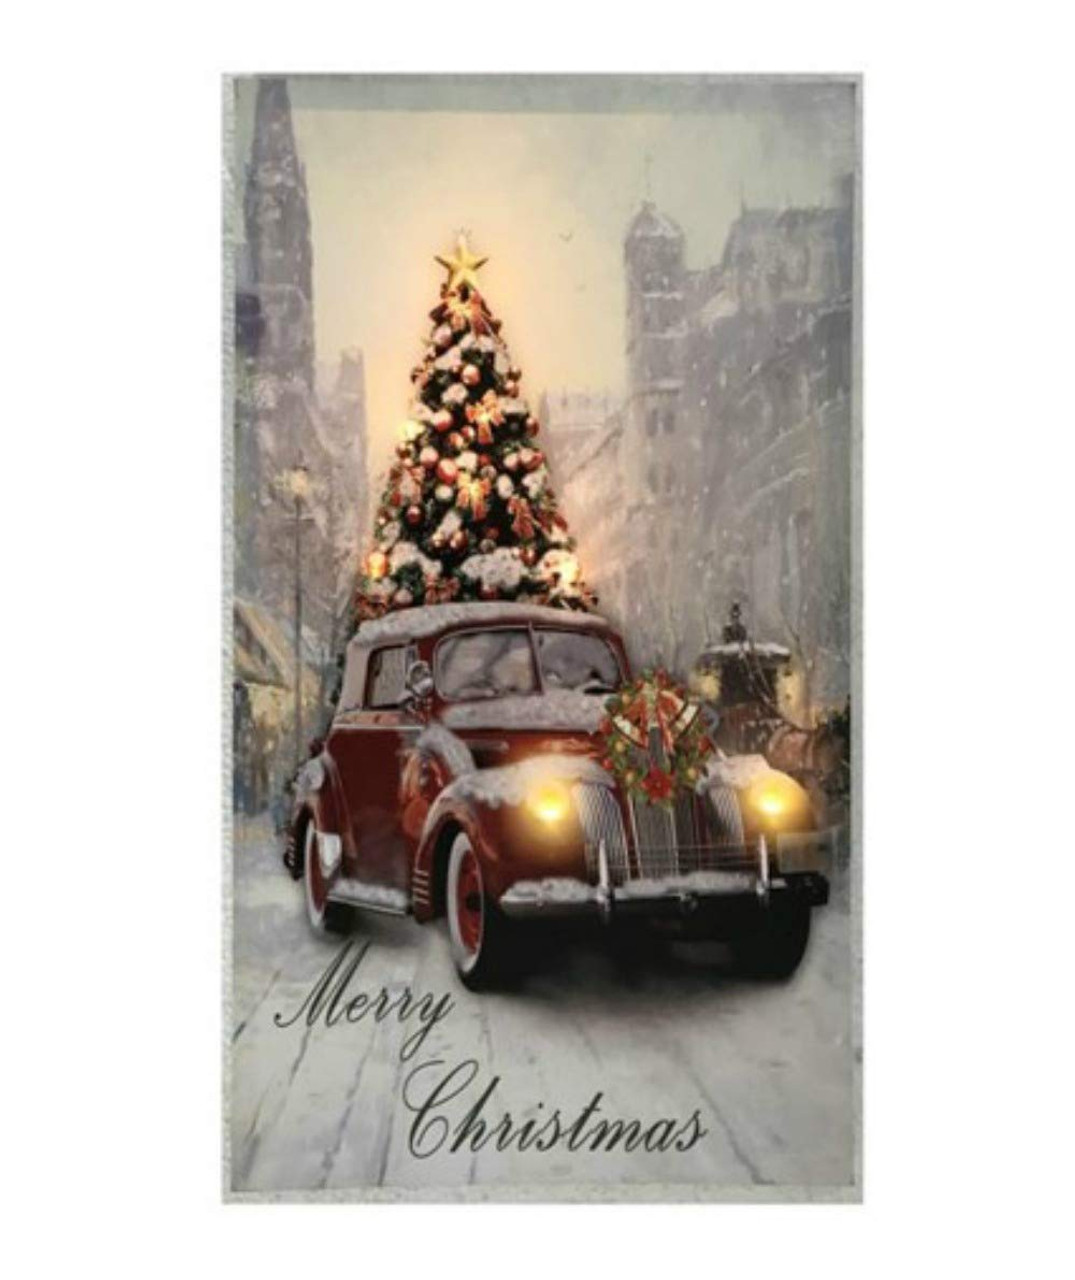 Christmas Led Canvas.Vintage Car With Christmas Tree Led Canvas